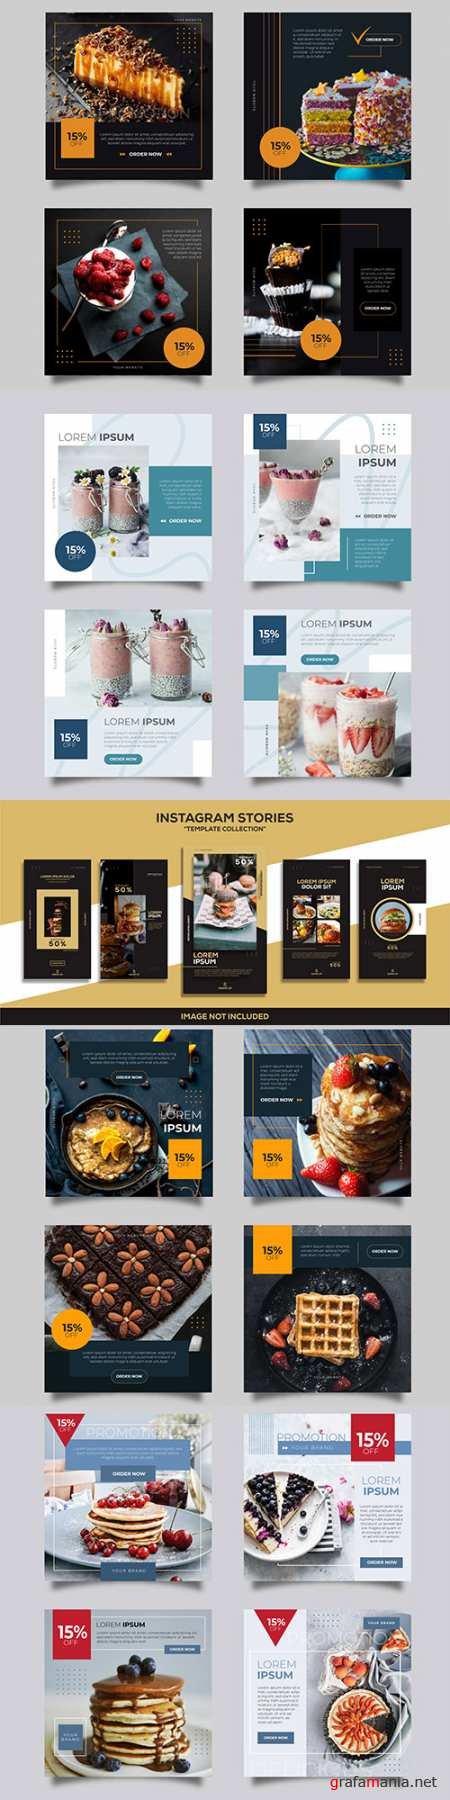 Social media instagram post design templates 3